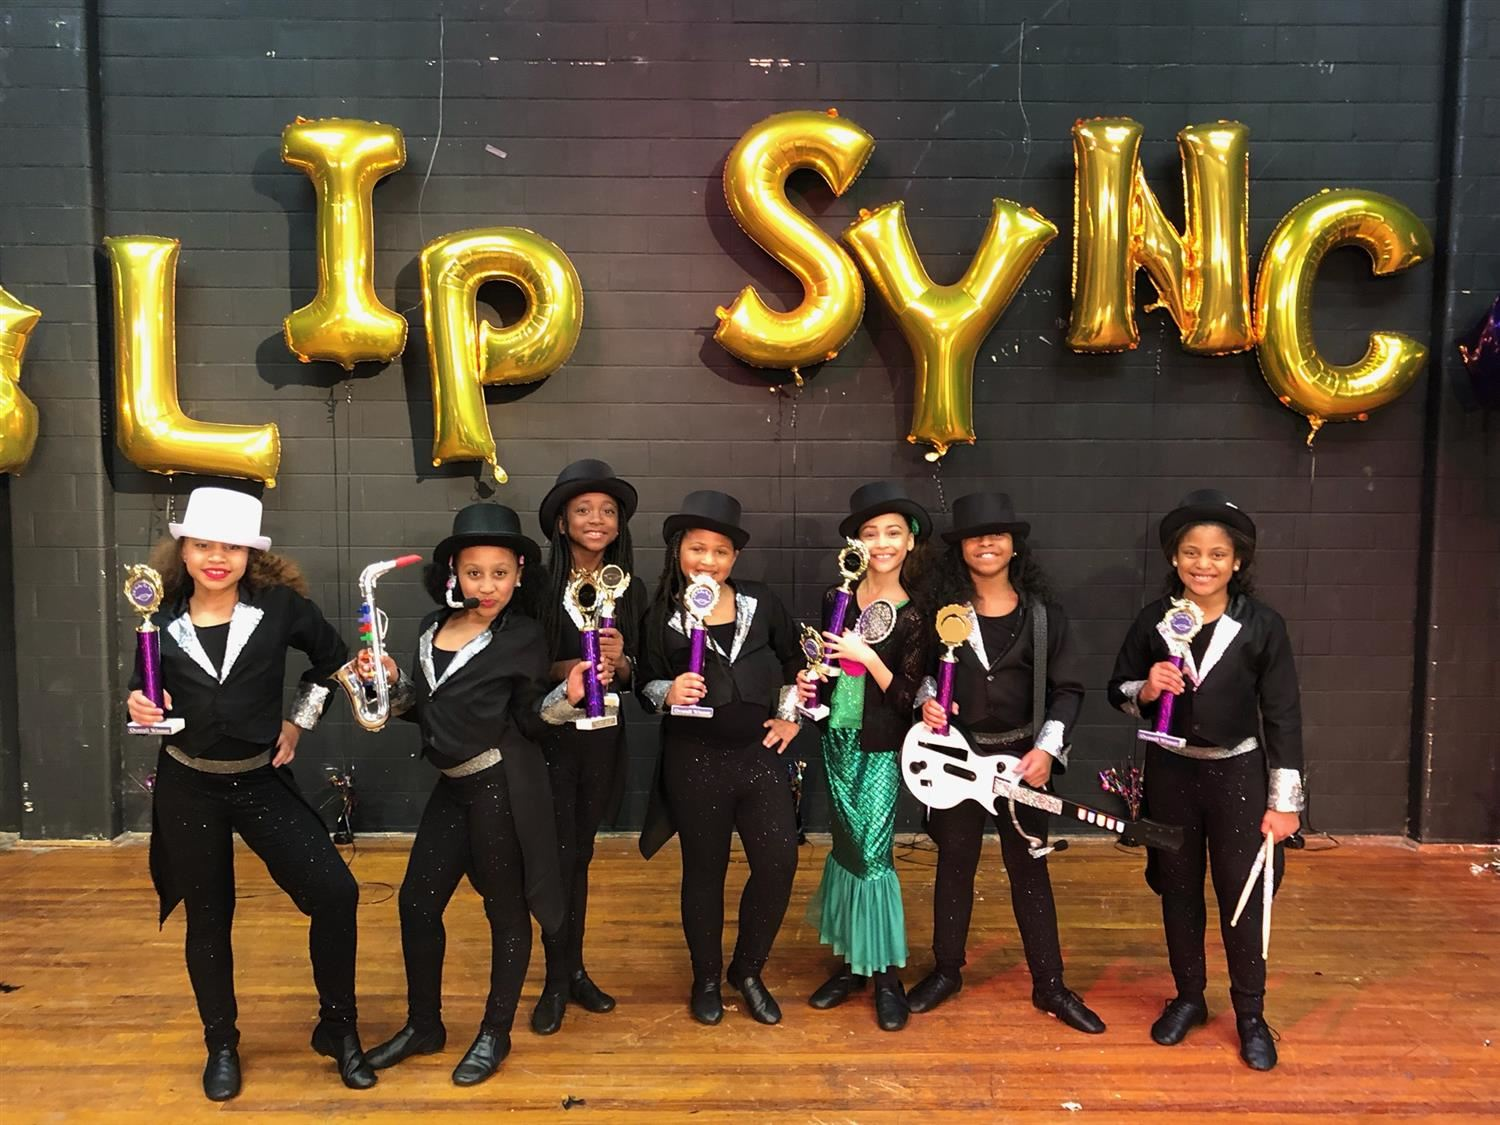 T.S. Cooley Lip Sync Winners